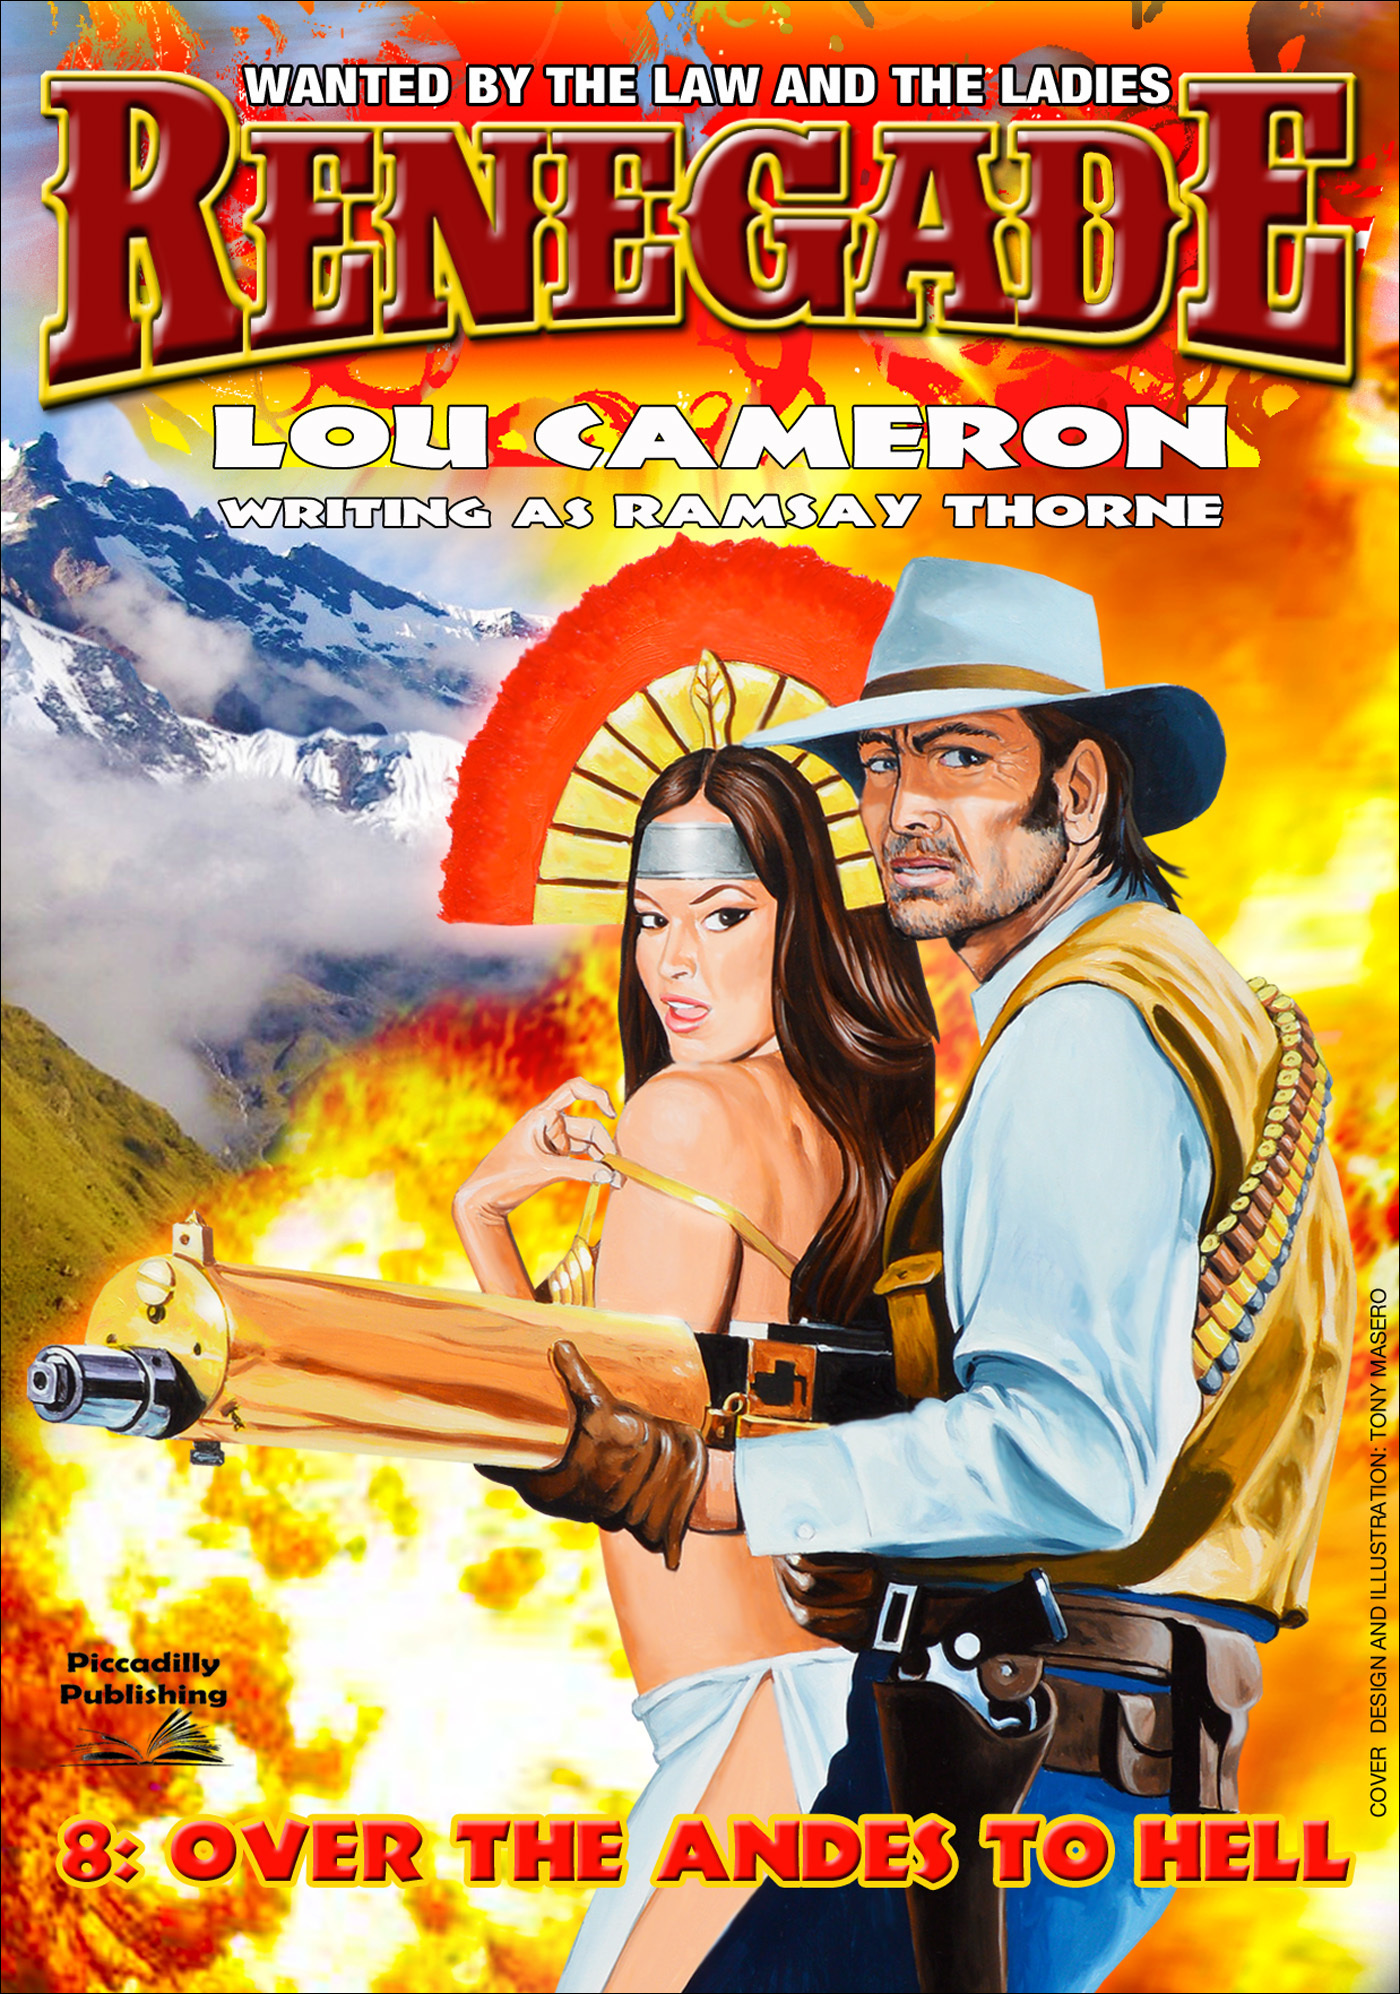 Over the Andes to Hell (A Captain Gringo Western Book 8) Lou Cameron